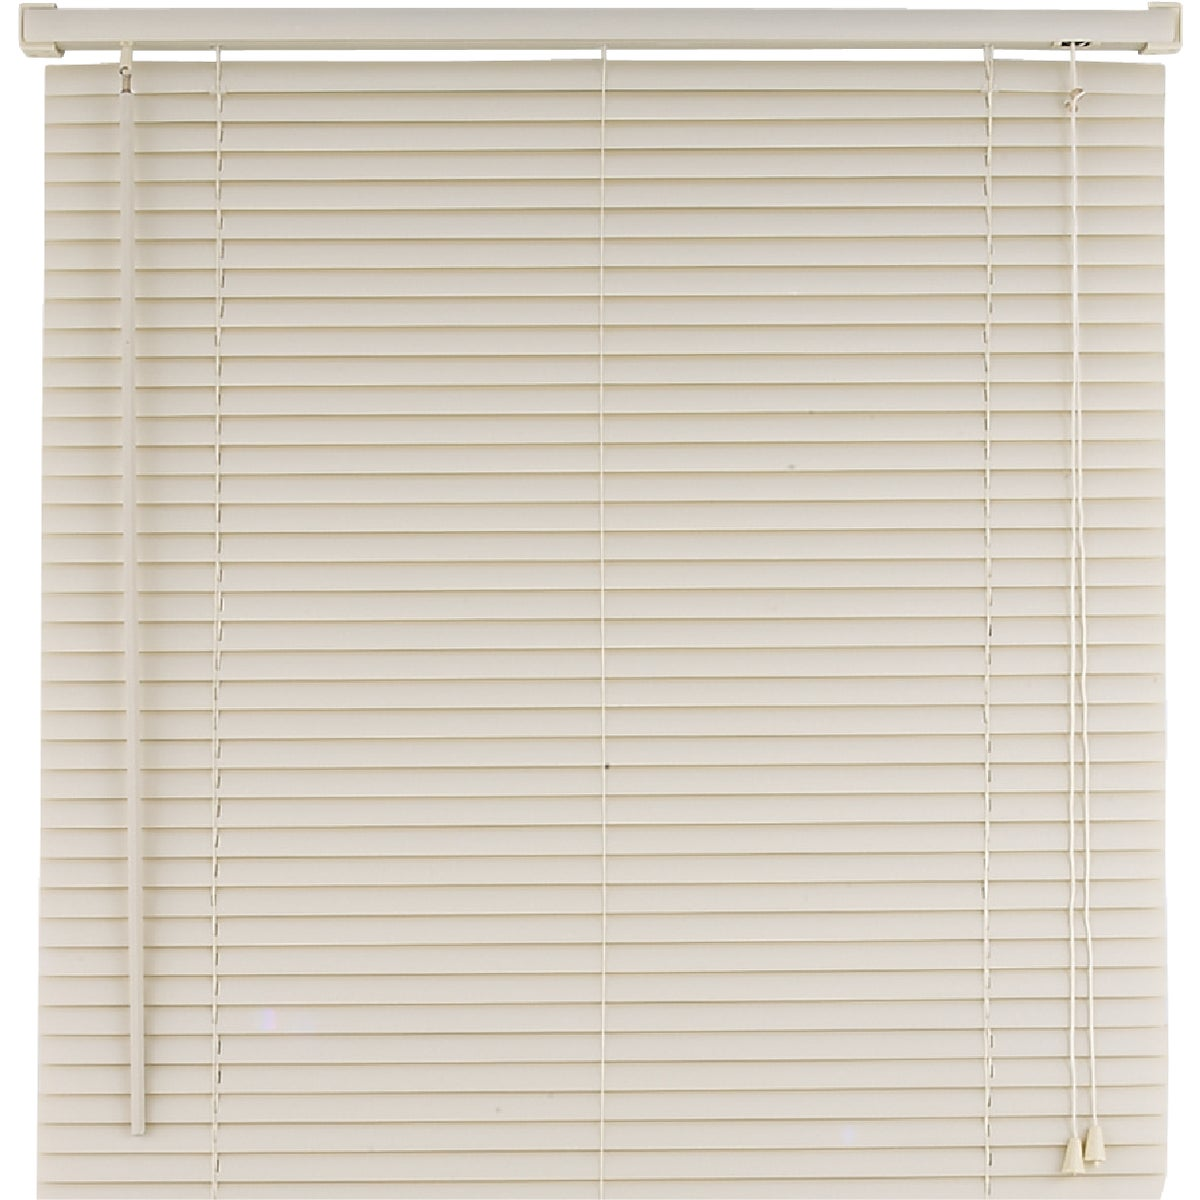 31X64 ALABASTER BLIND - 15039 by Lotus Wind Incom